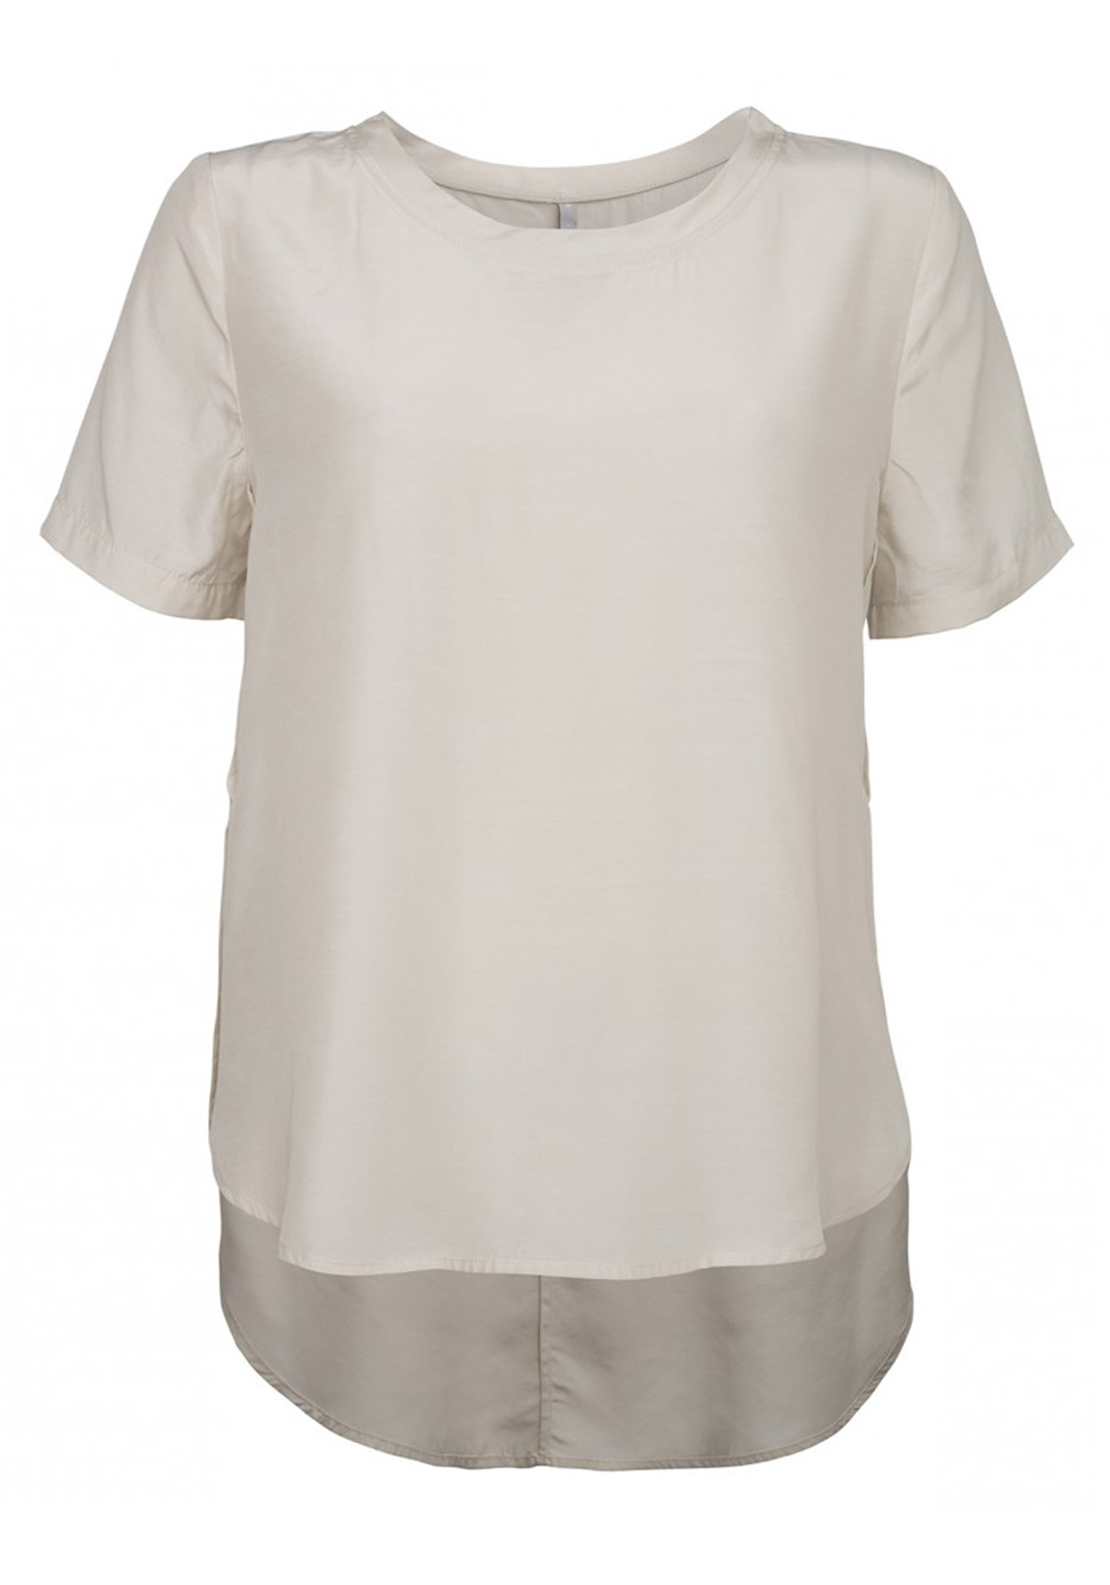 Yaya Side Split Short Sleeve Top, Cream